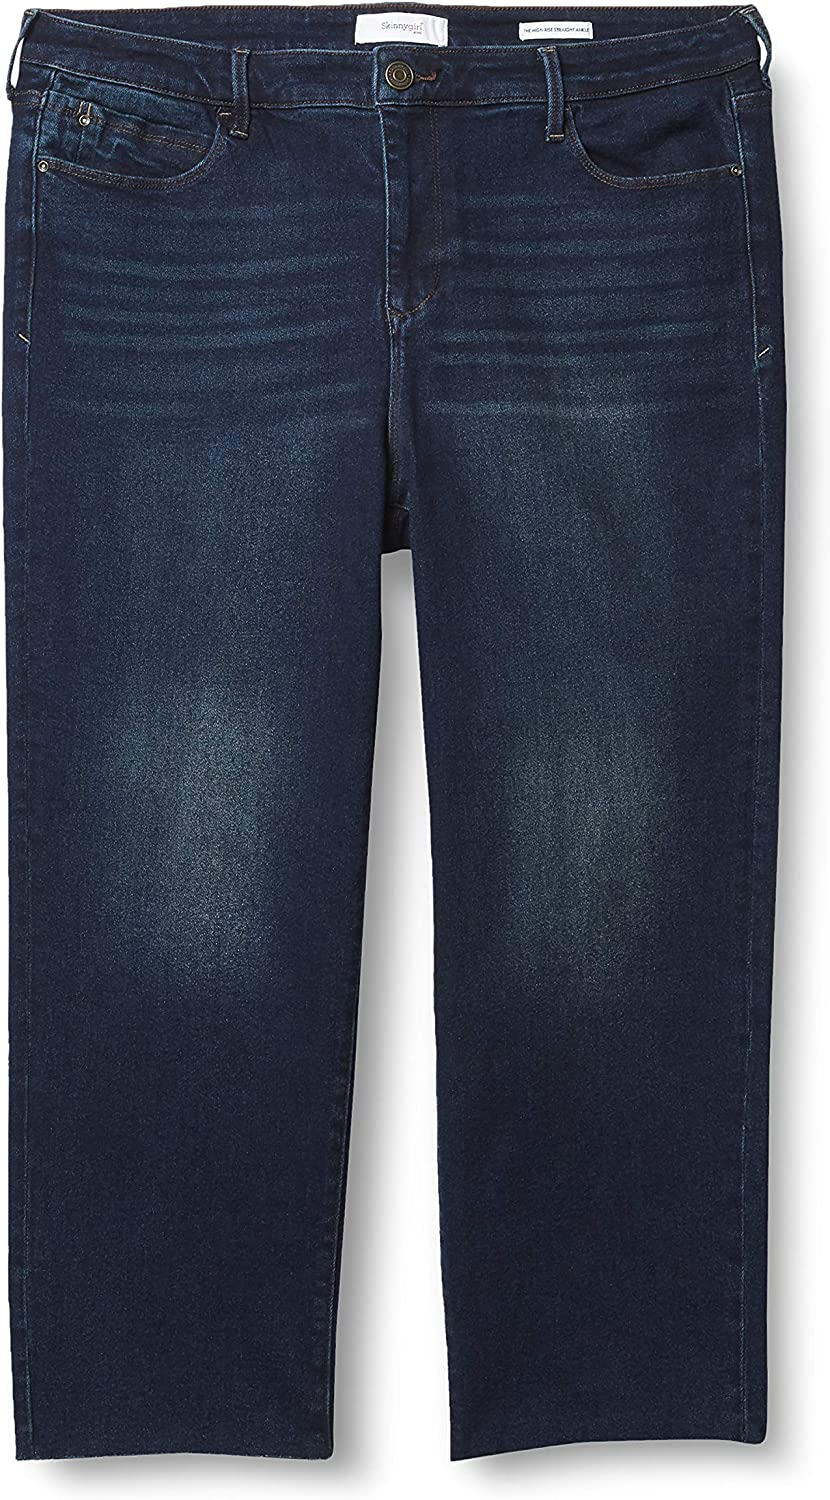 Skinnygirl Women's Warren High Straight Ankle Detroit Mall Sale special price Rise